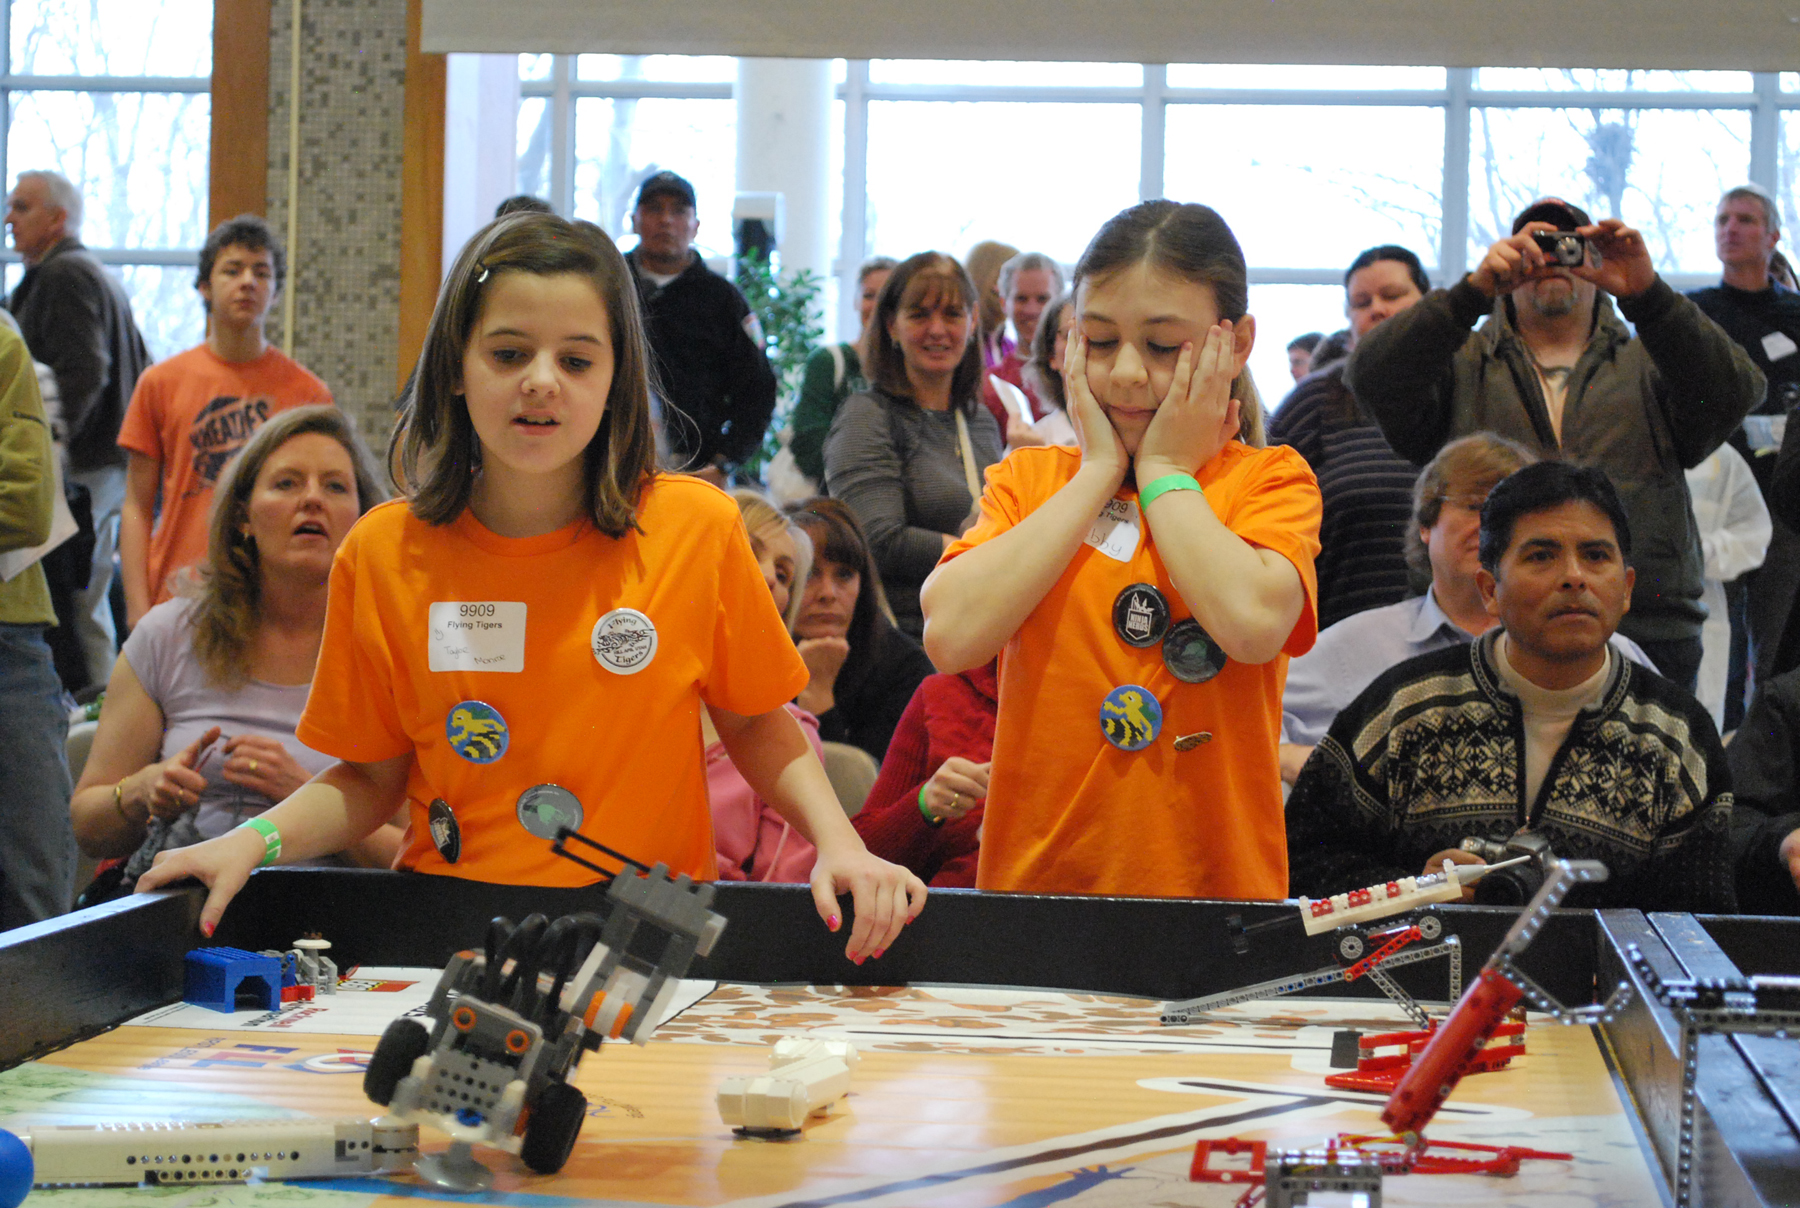 Middle school students compete at the U in the FIRST LEGO League Championship.